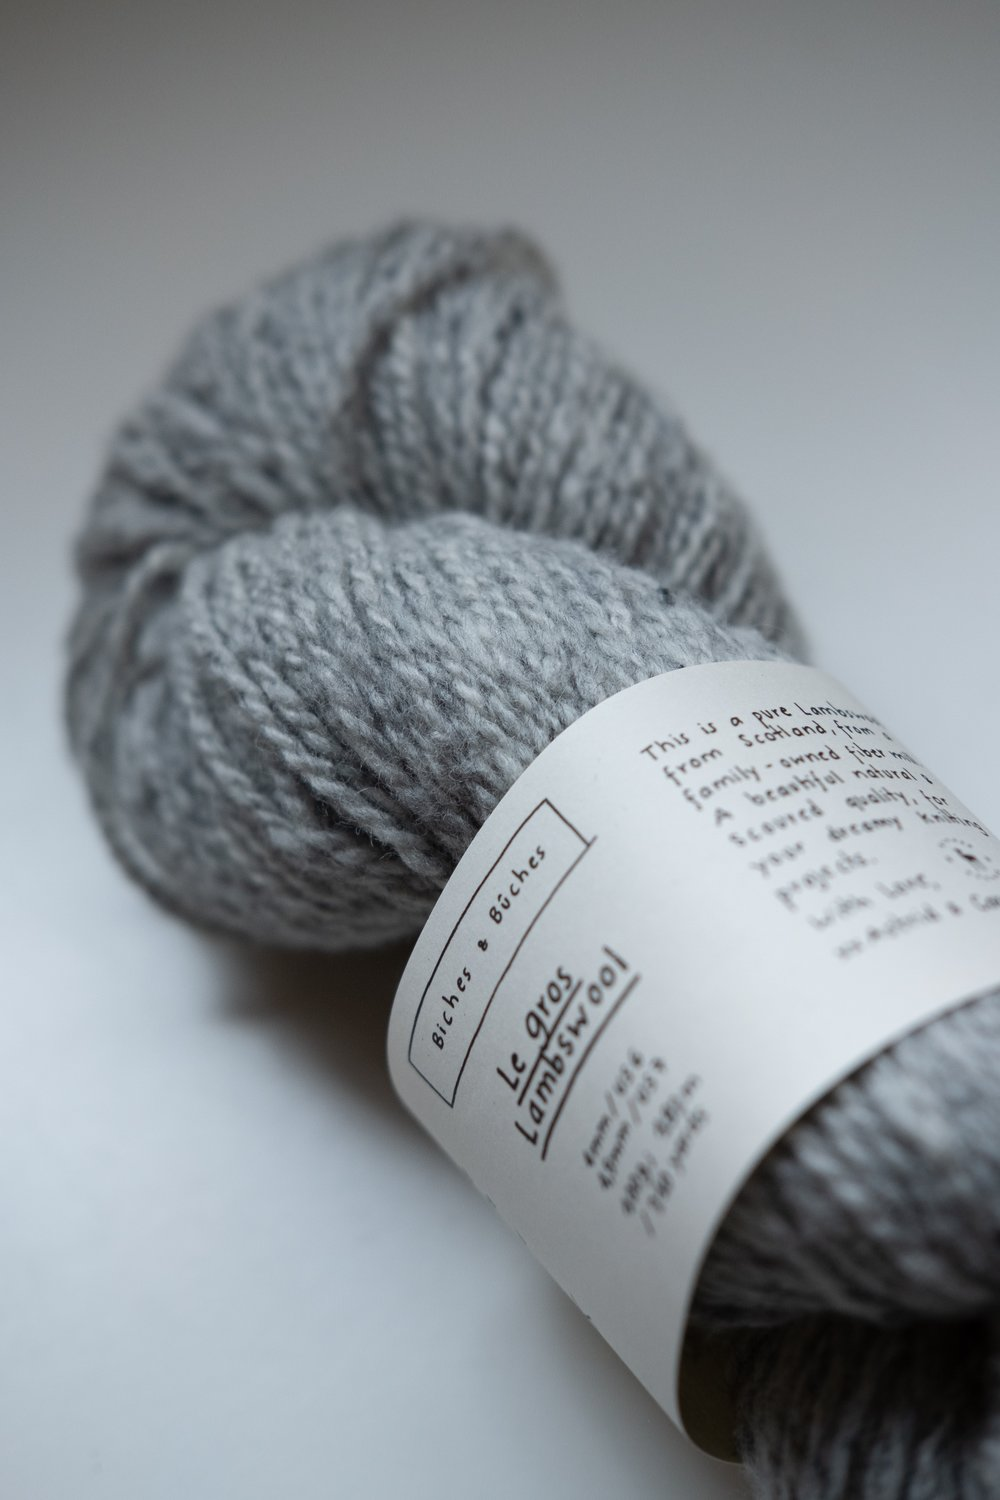 biches-et-buches_le-gros-lambswool.jpg